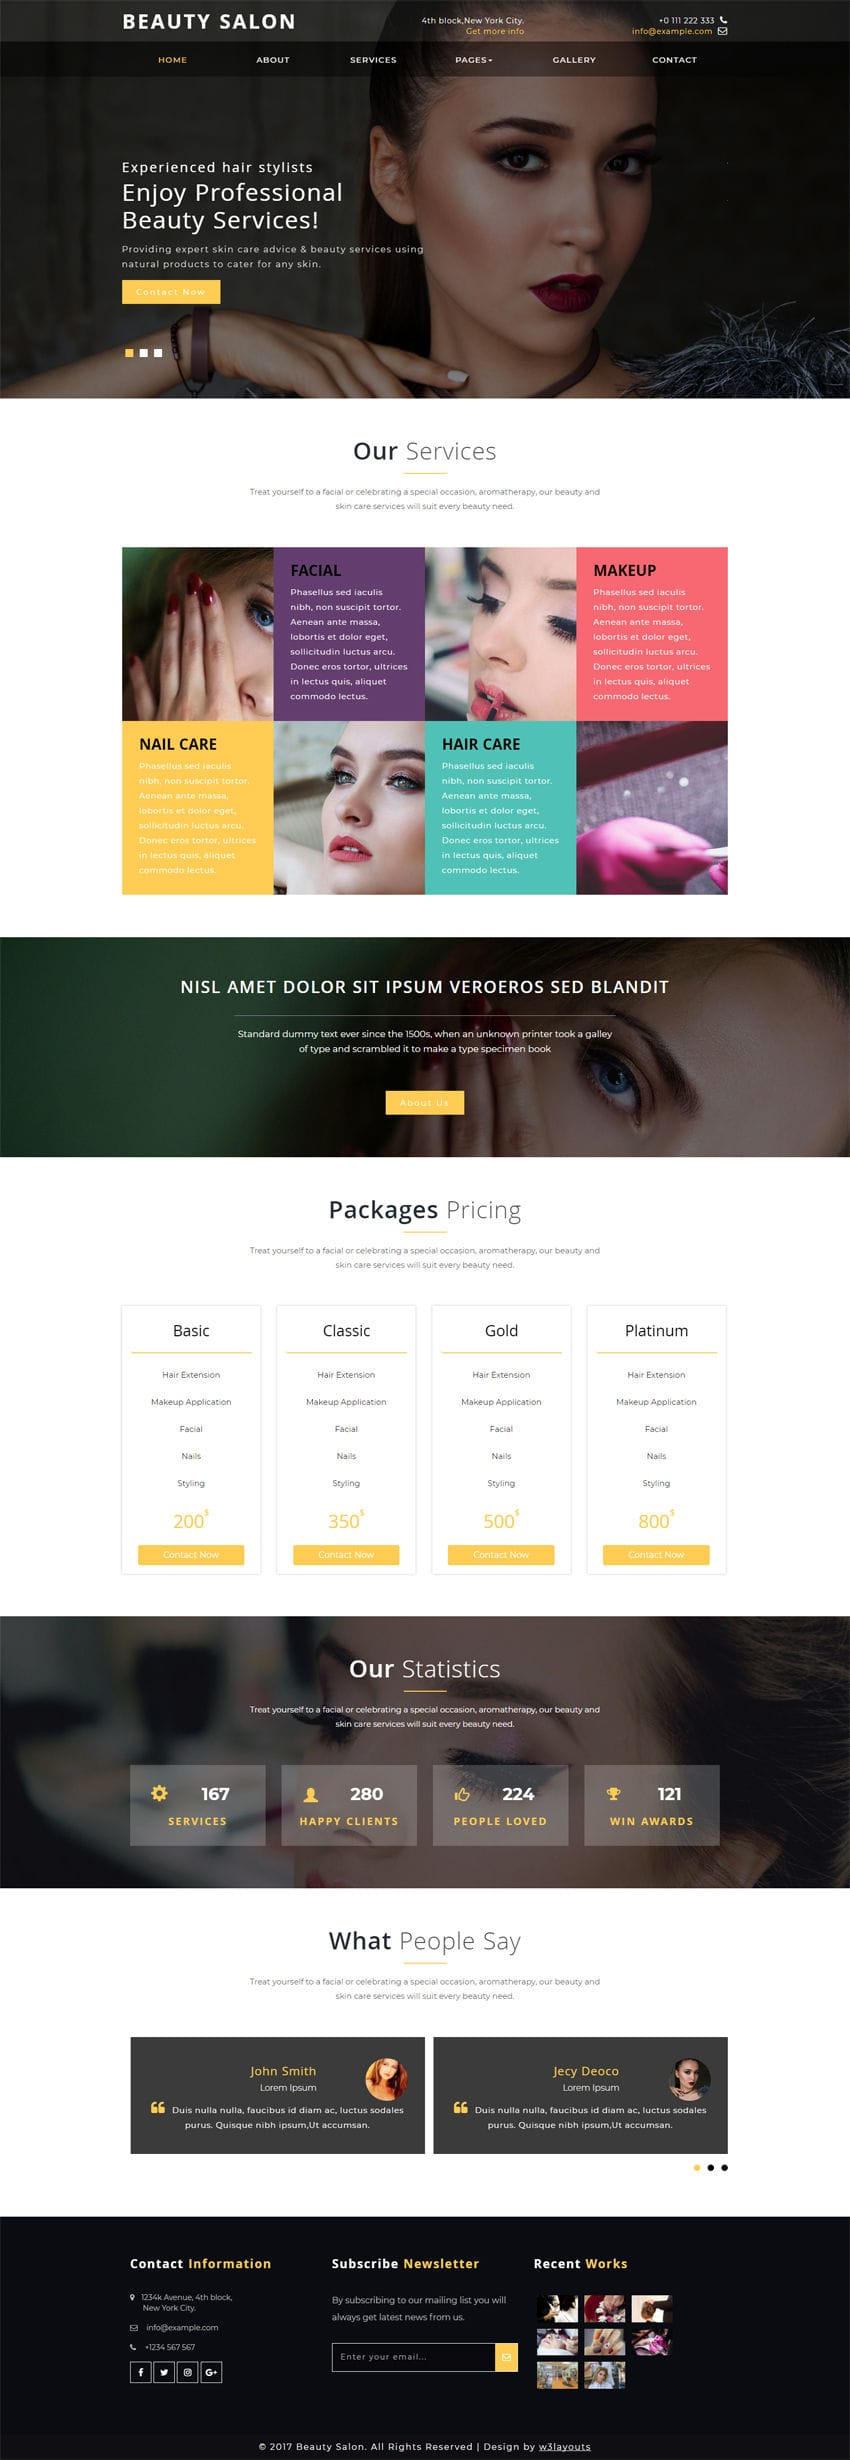 Beauty Salon is a Beauty & Spa Bootstrap Responsive Website Template. This Free web template works best for Beauty Salons, Spas & other similar websites.